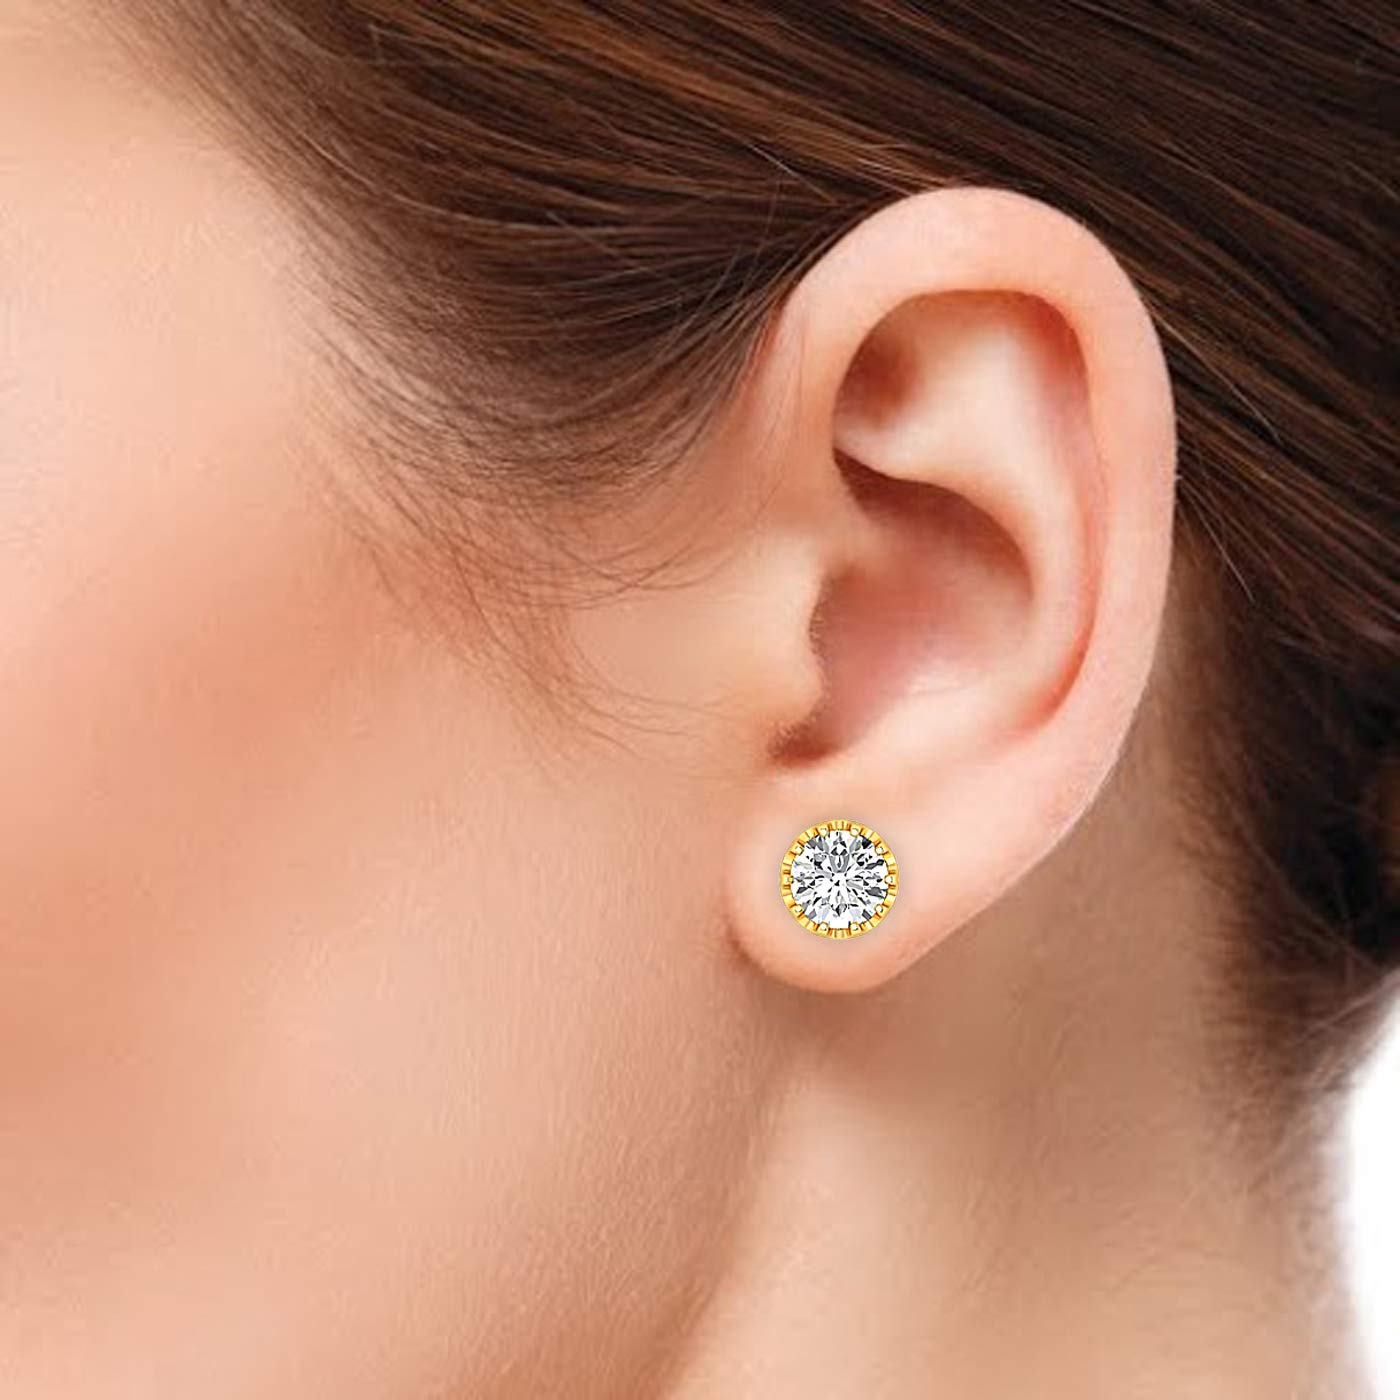 Round Brilliant Stud Earrings for Women perfect Jewelry Gifts for Women Teen Girls Earring Studs 0.3 to 4 Carat Moissanite Stud Earrings GH//VVS 18K yellow-gold